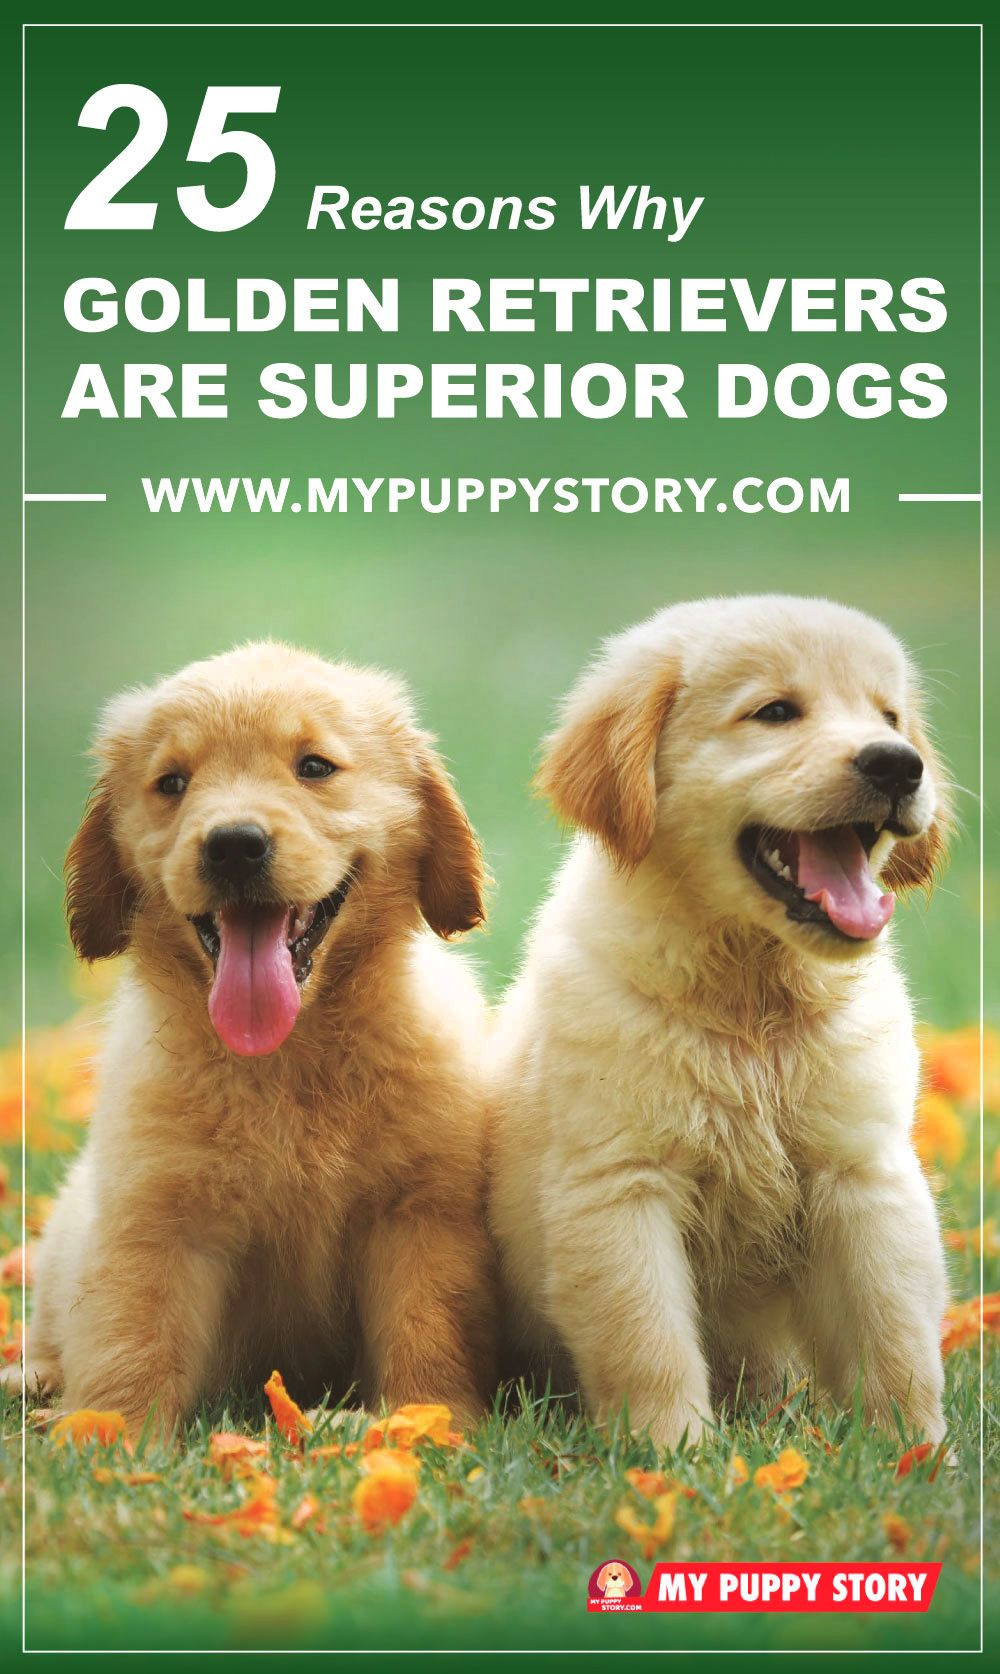 25 Reasons Why Golden Retrievers Are Superior Dogs Pet Insurance